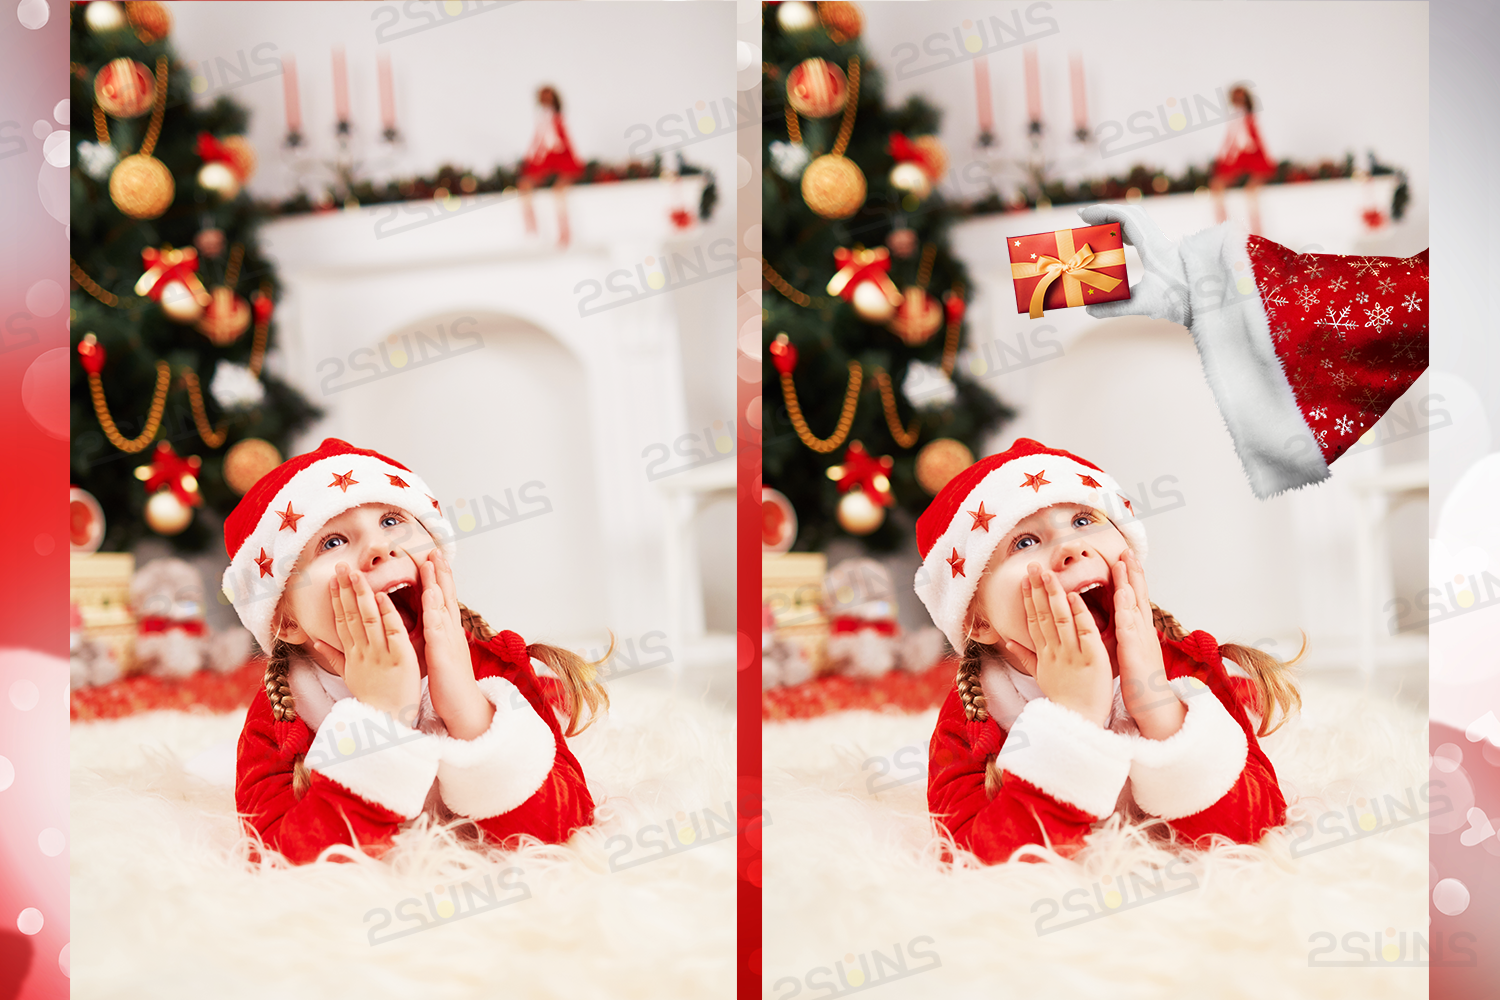 Christmas overlays Santa Claus Hand clipart png Photoshop example image 3